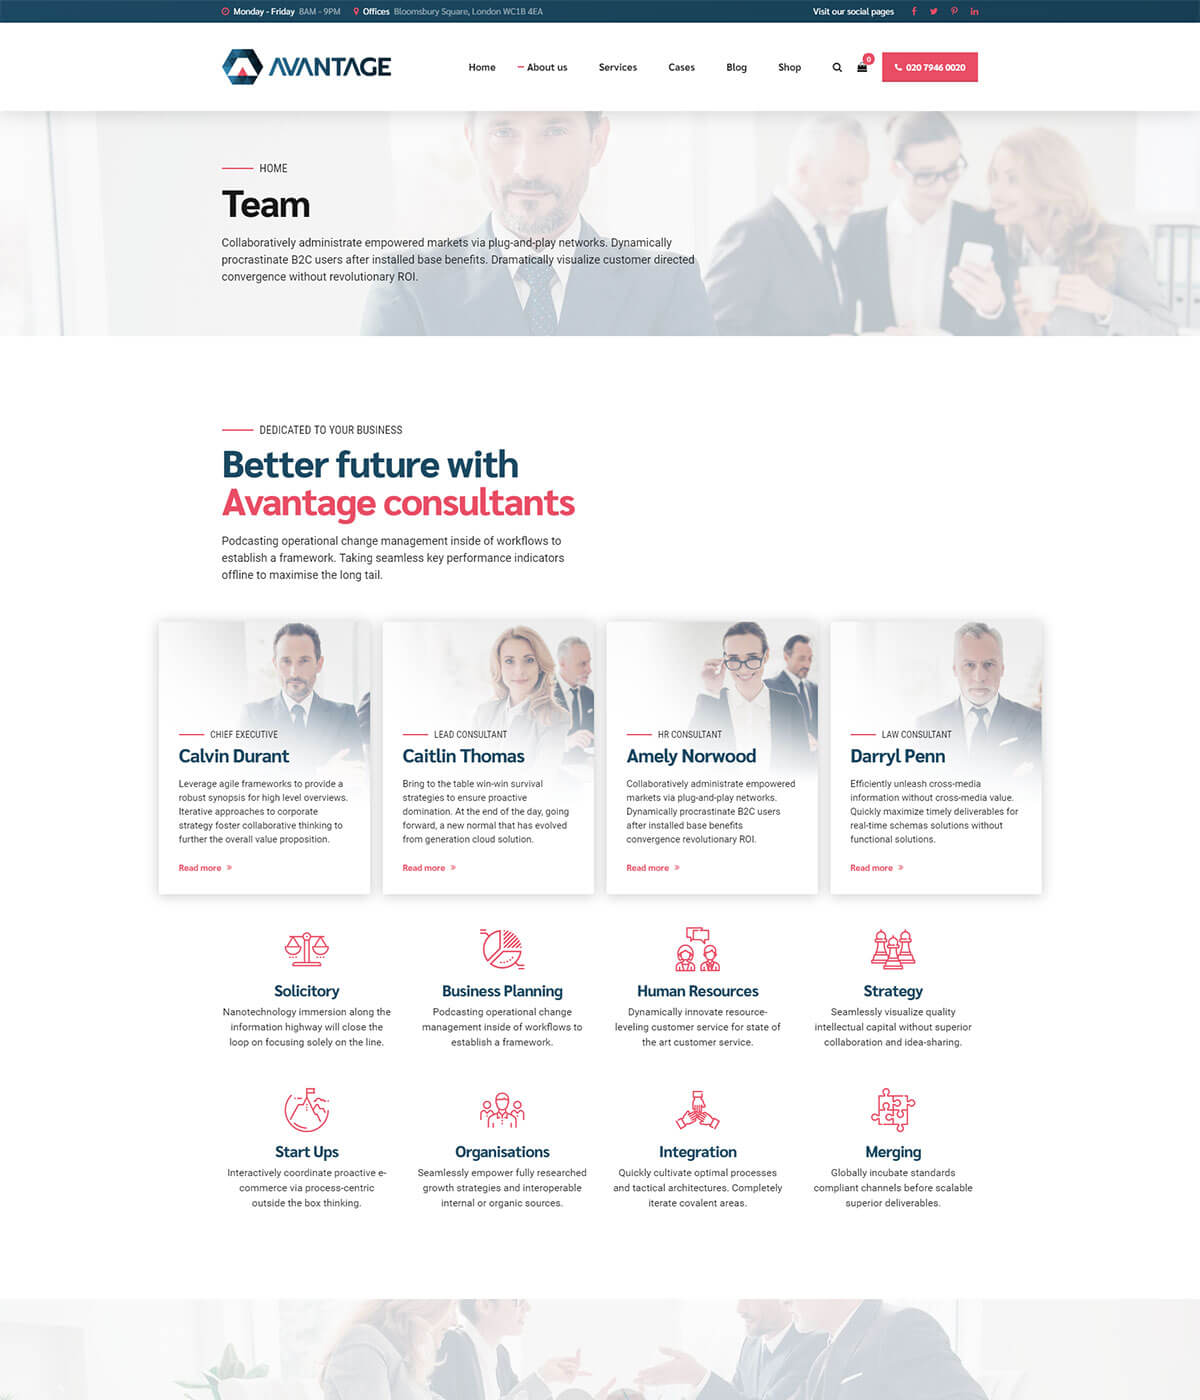 http://avantage.bold-themes.com/wp-content/uploads/2019/05/business-03-team.jpg